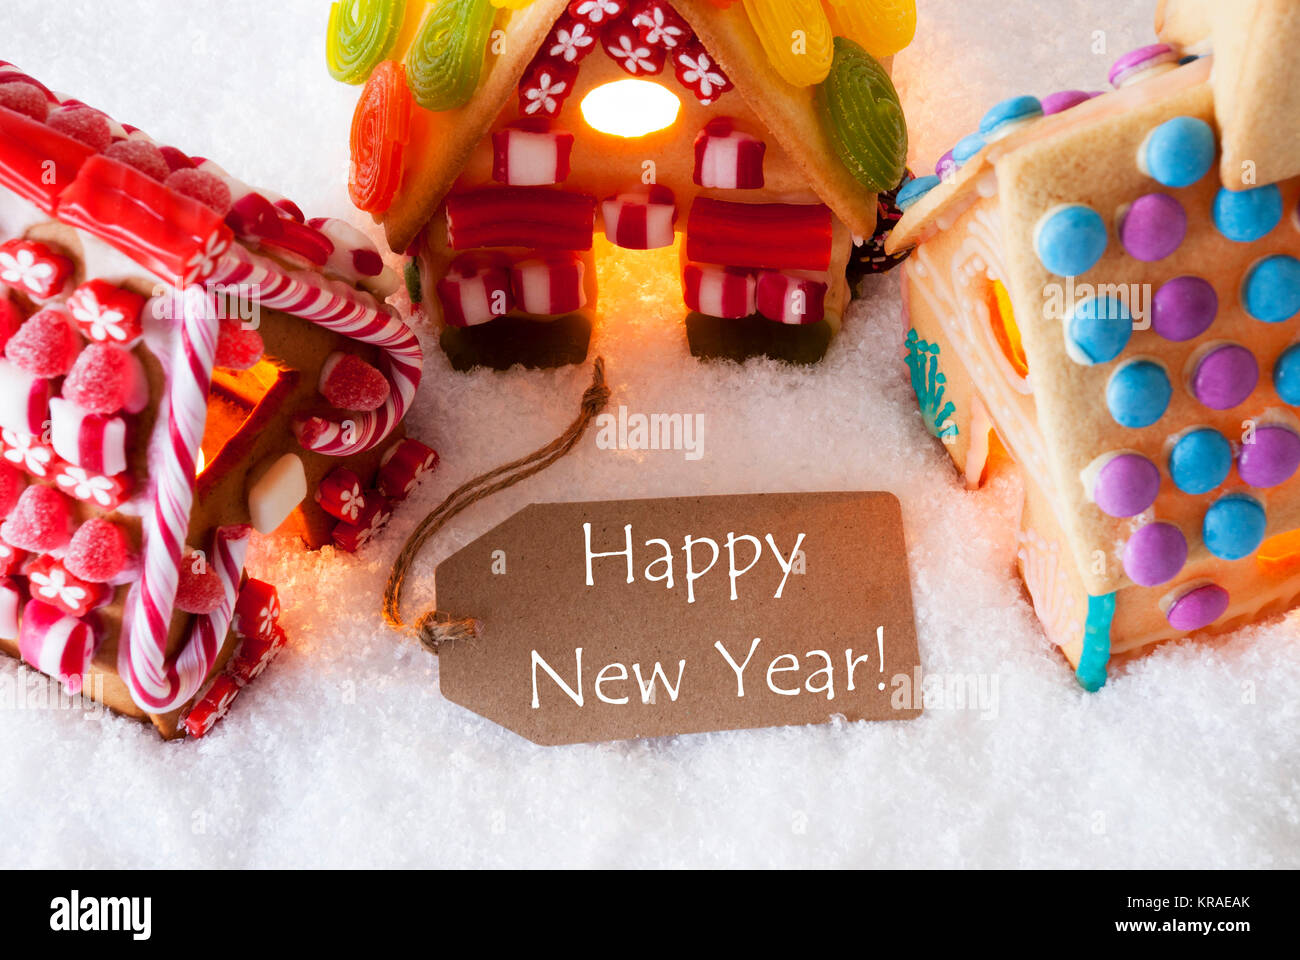 English new year greetings stock photos english new year greetings label with english text happy new yea colorful gingerbread house on snow christmas card m4hsunfo